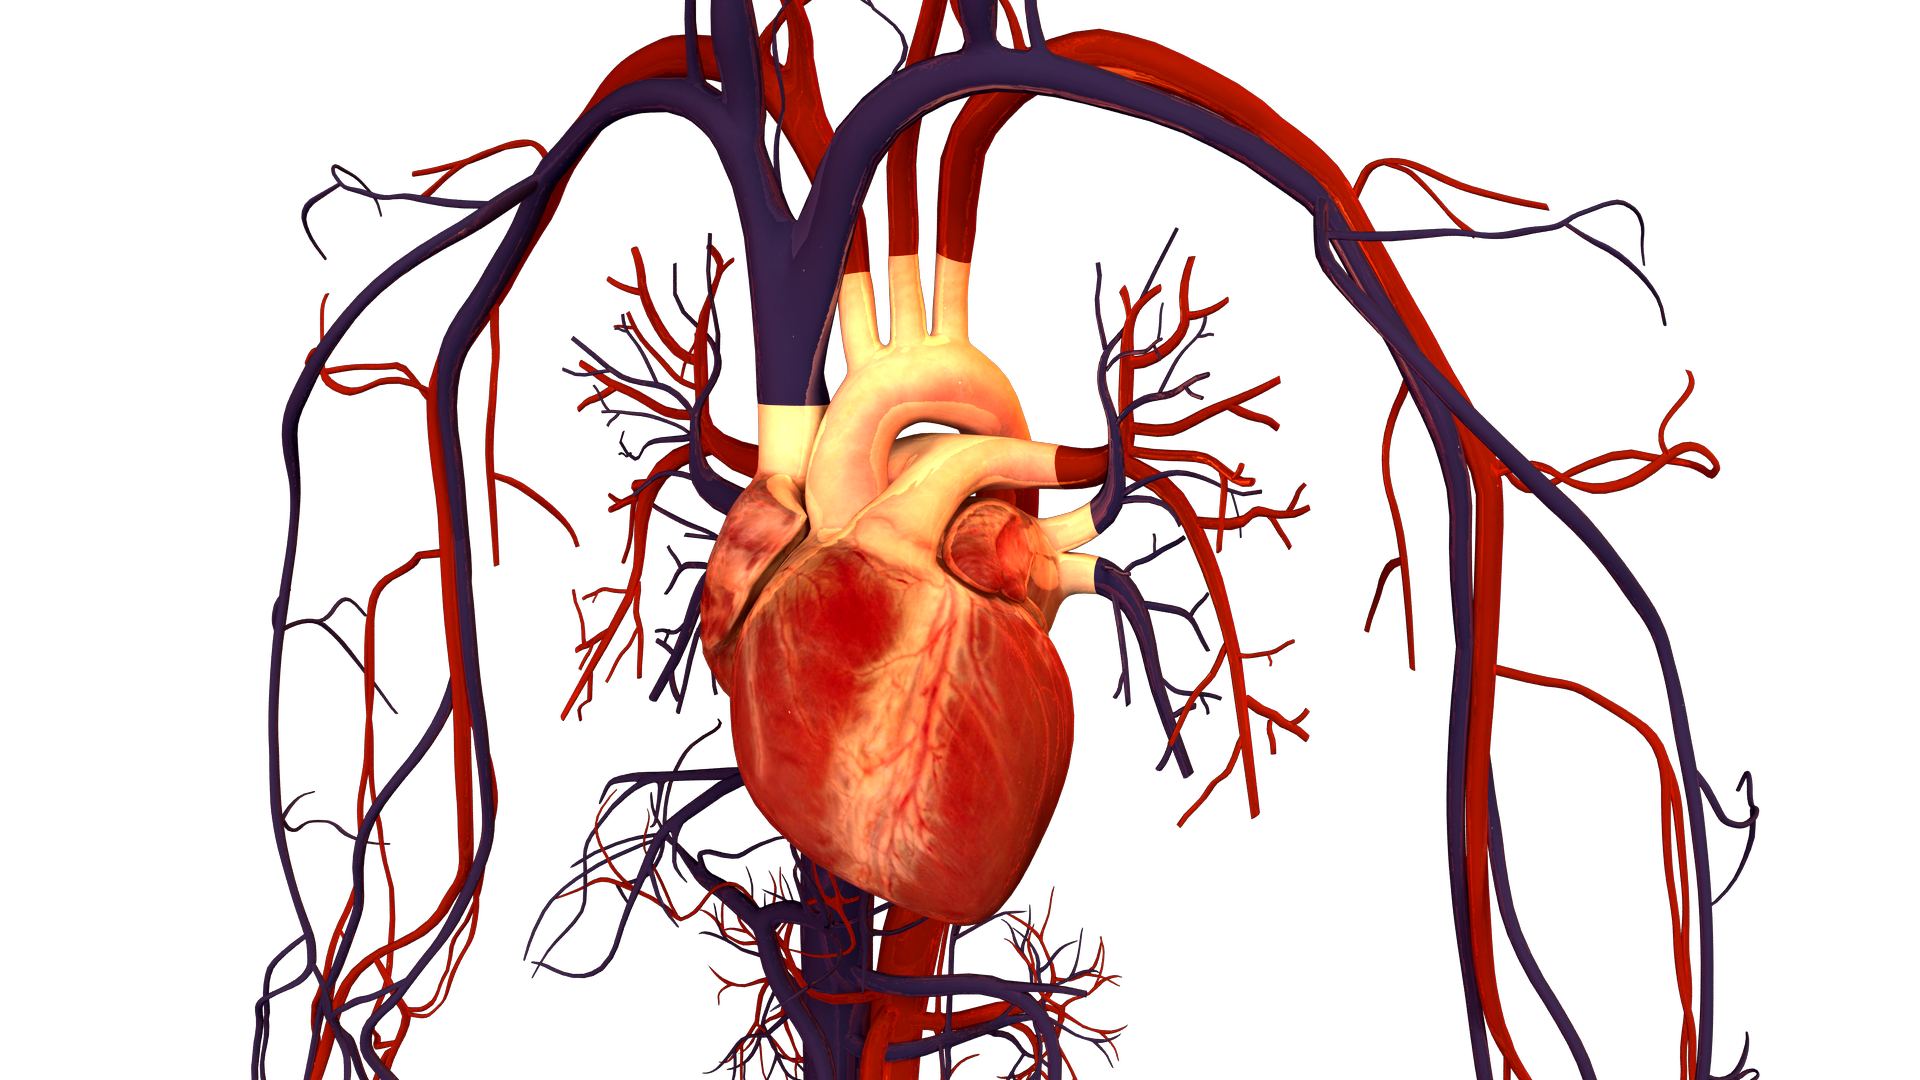 Human Heart Images Download Clip Art Clip Art on 1920x1080